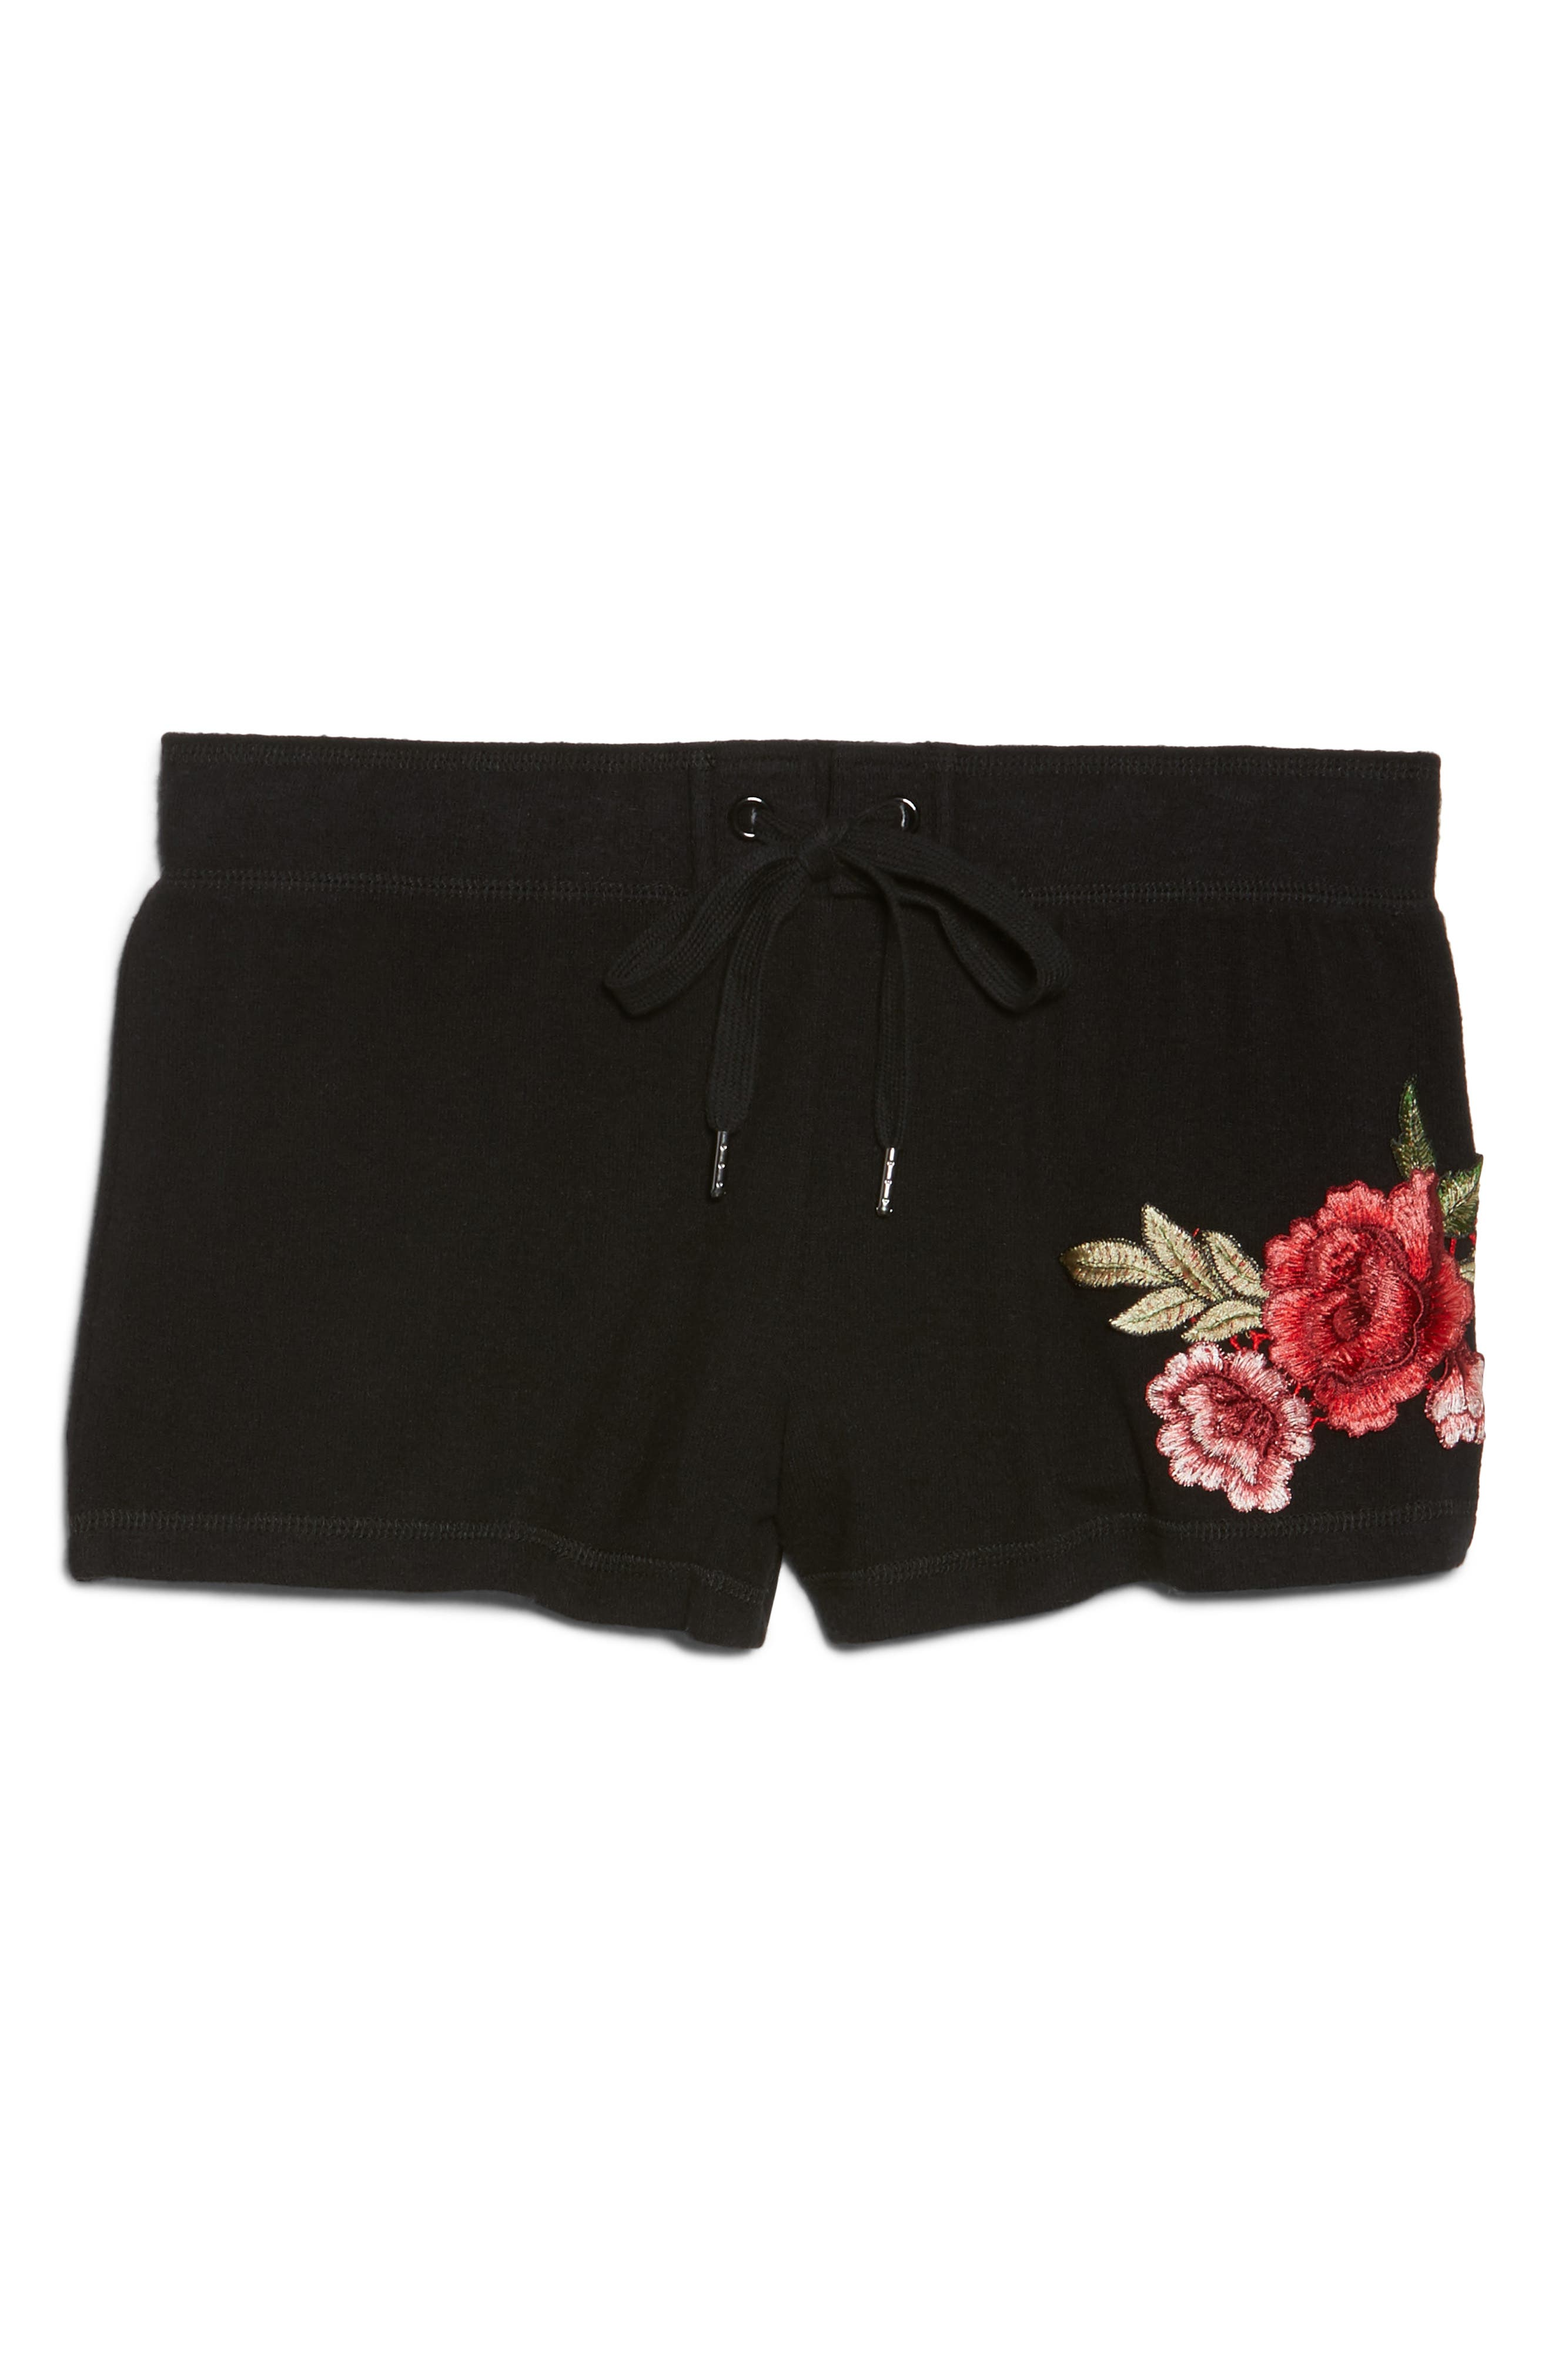 Embroidered Lounge Shorts,                             Alternate thumbnail 4, color,                             Black